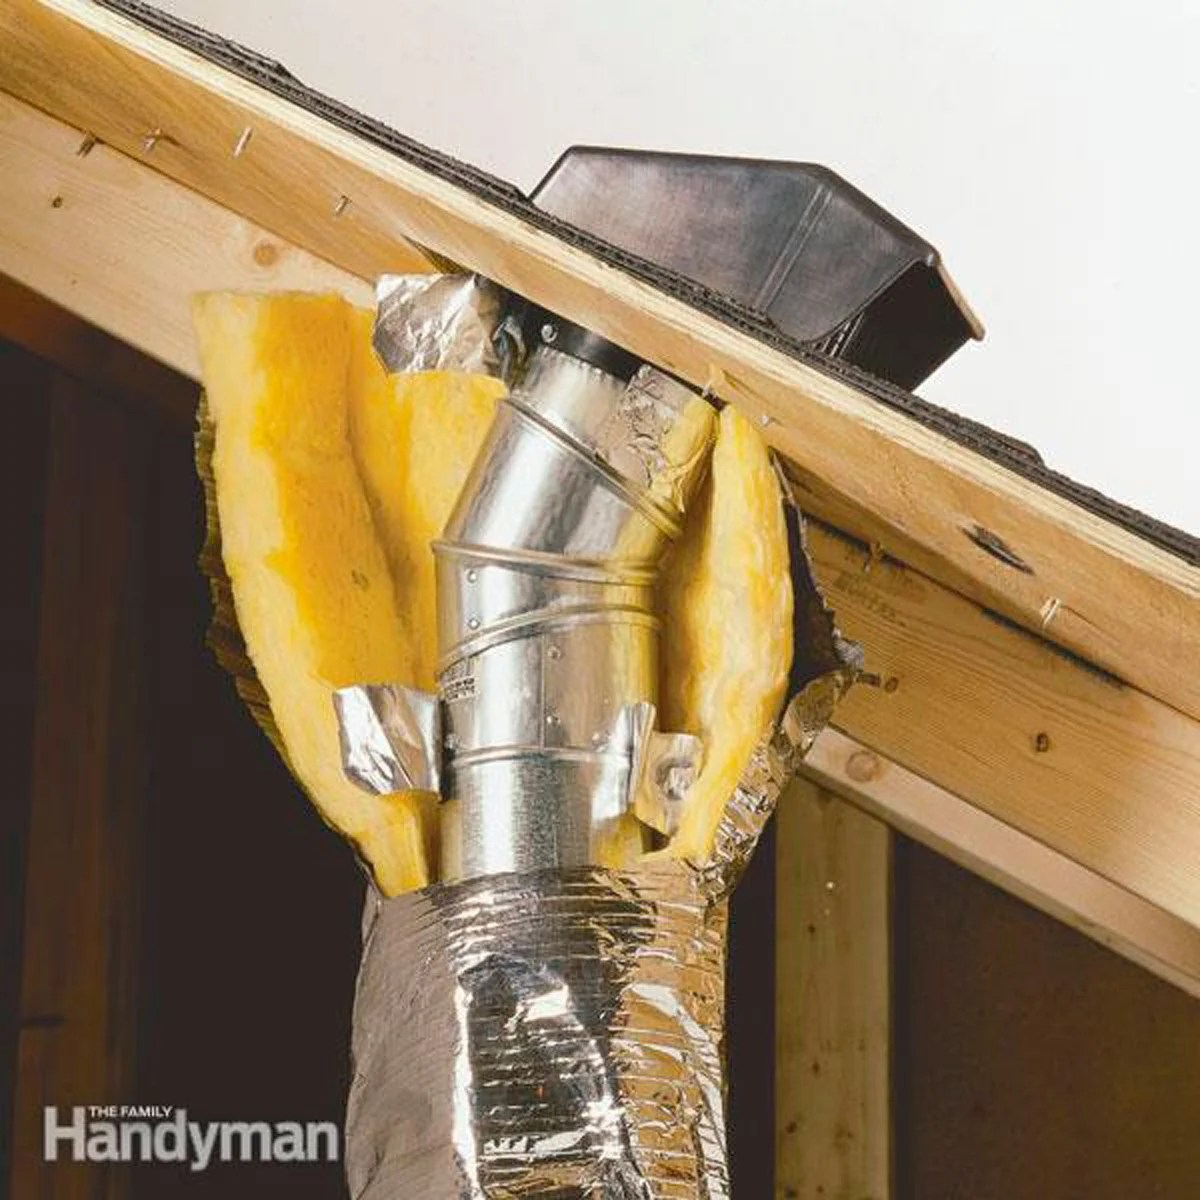 Venting Exhaust Fans Through The Roof Diy Family Handyman